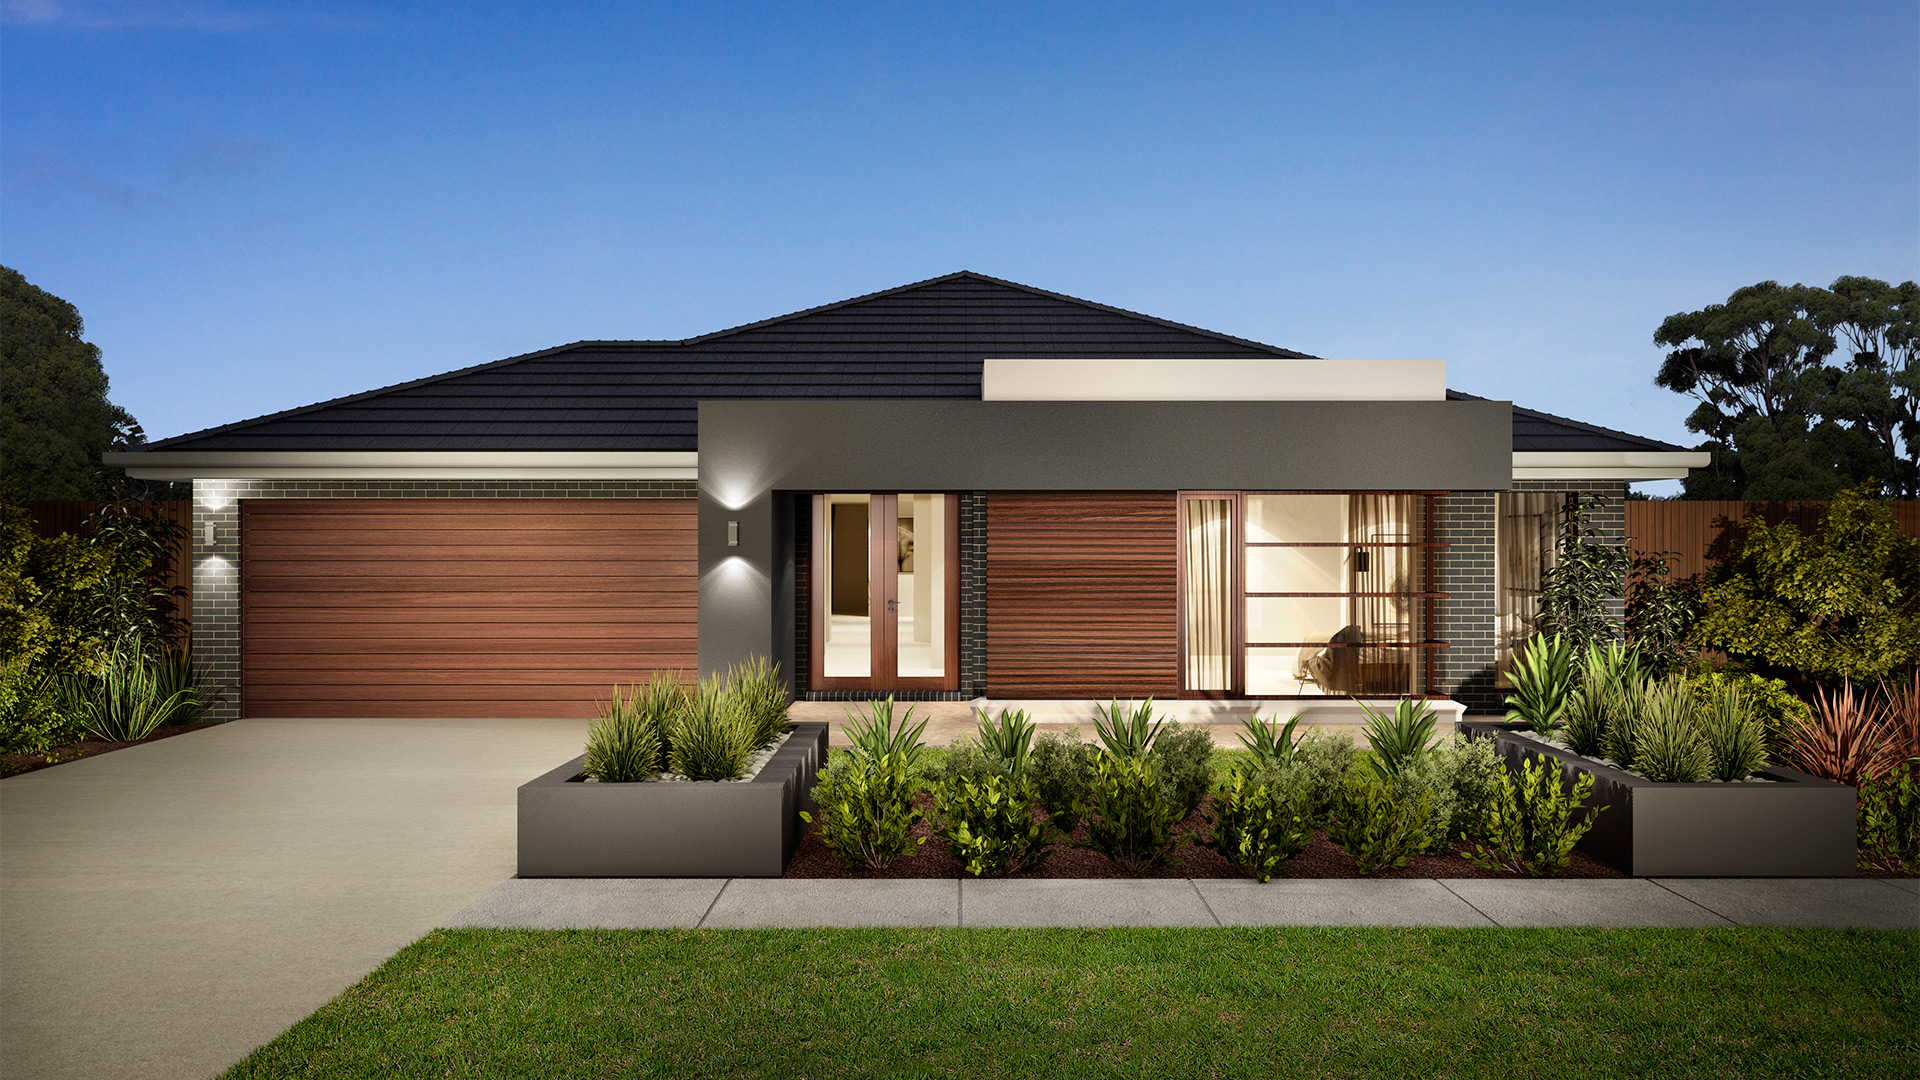 Lot 47 Kangaroo Way Kyabram